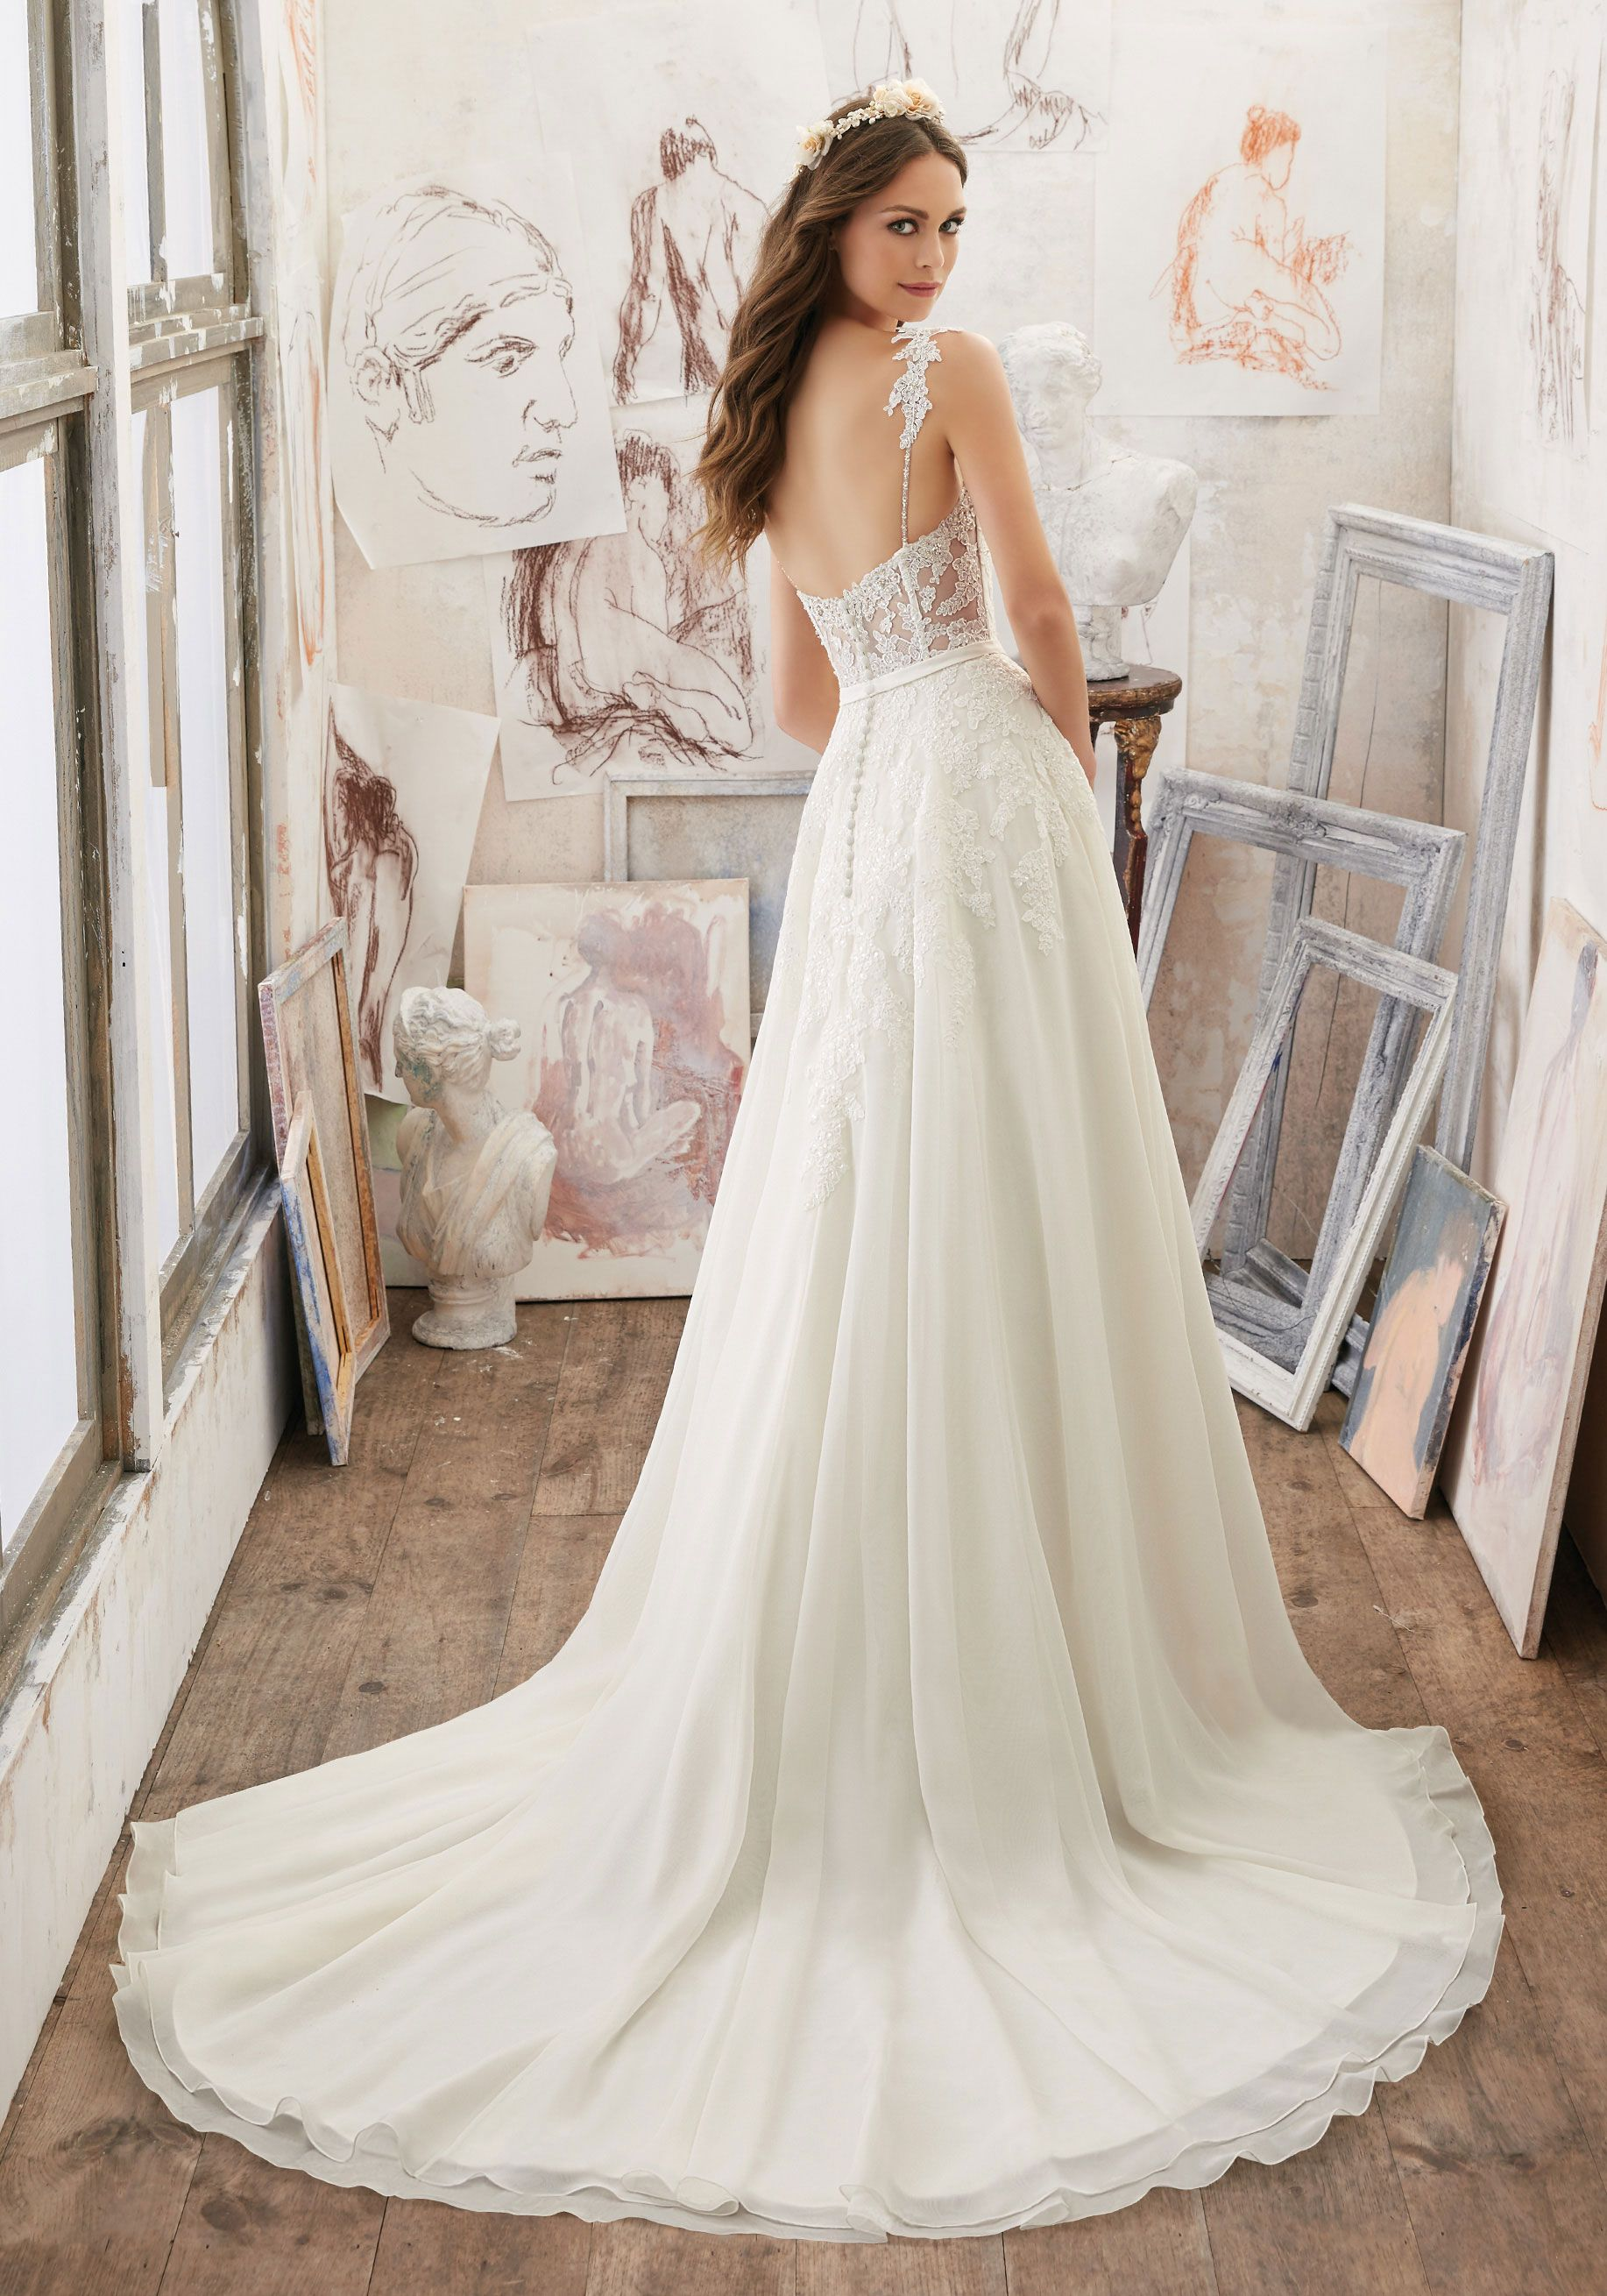 1f39258896ac Marzena Wedding Dress - Morilee | Weddings in 2019 | Pinterest ...